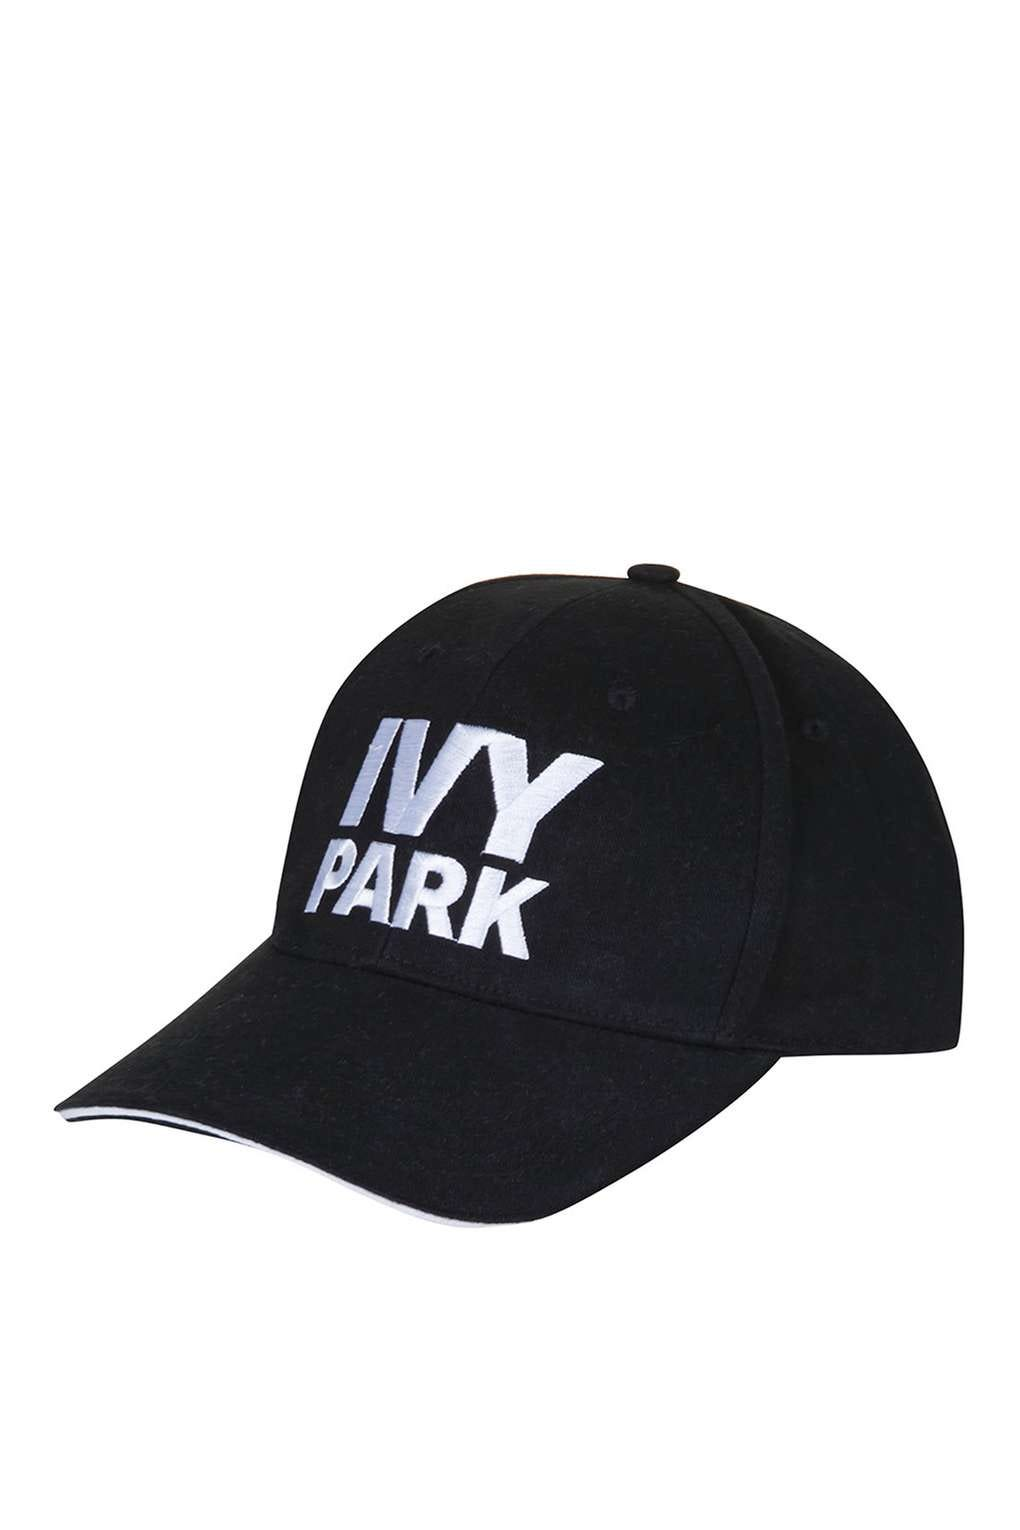 It S A Dad Inspired Item And The Trend Is Being Harder To Deny Hats Be Kind Of Caps Spotted On Middle Aged Men